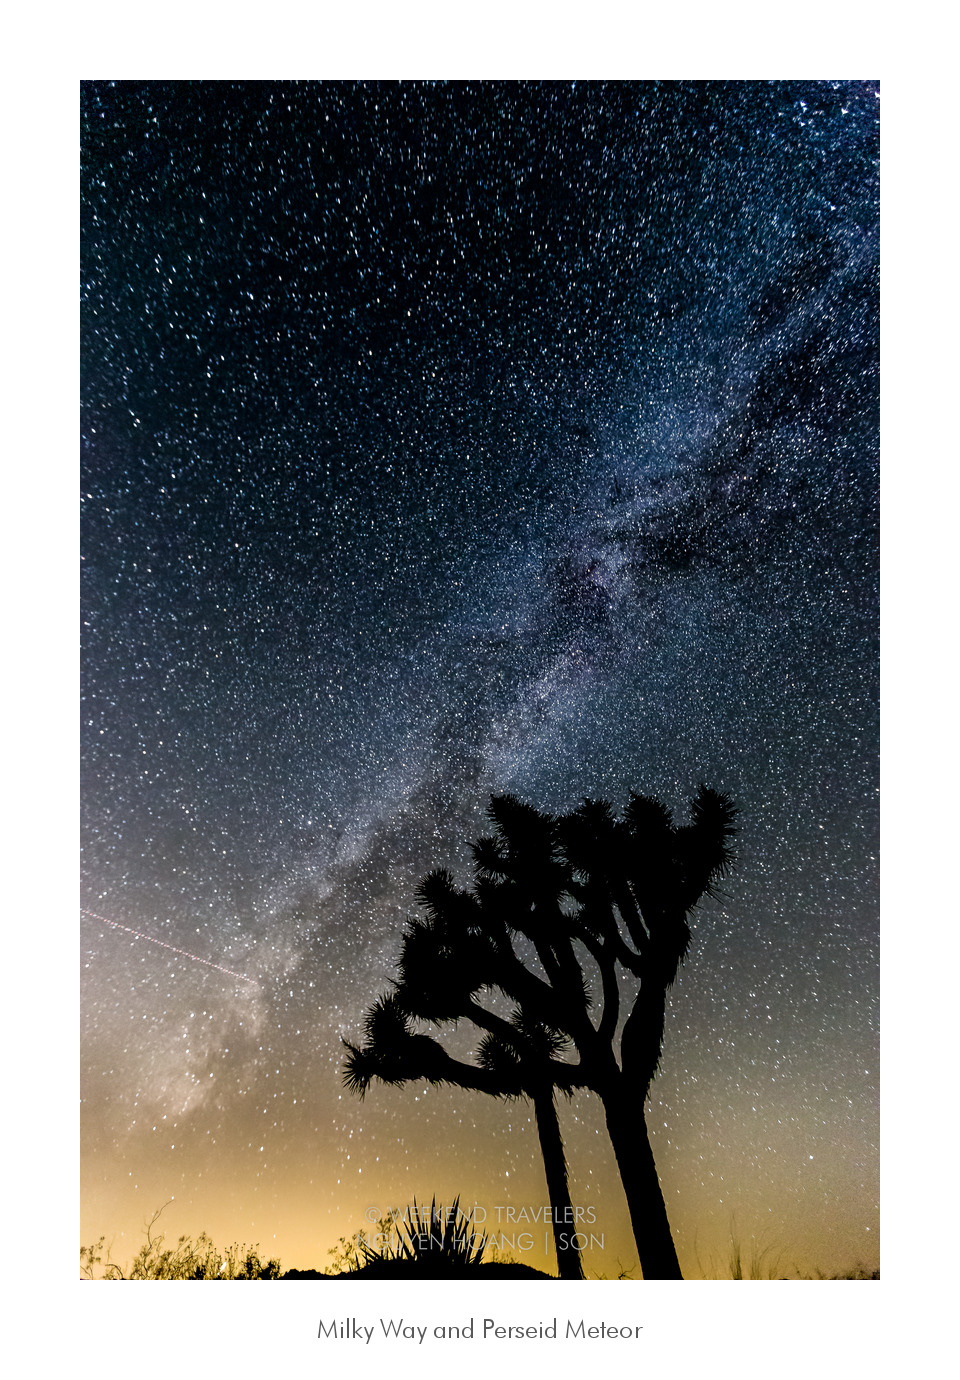 Joshua Tree and the milky way, desert at night